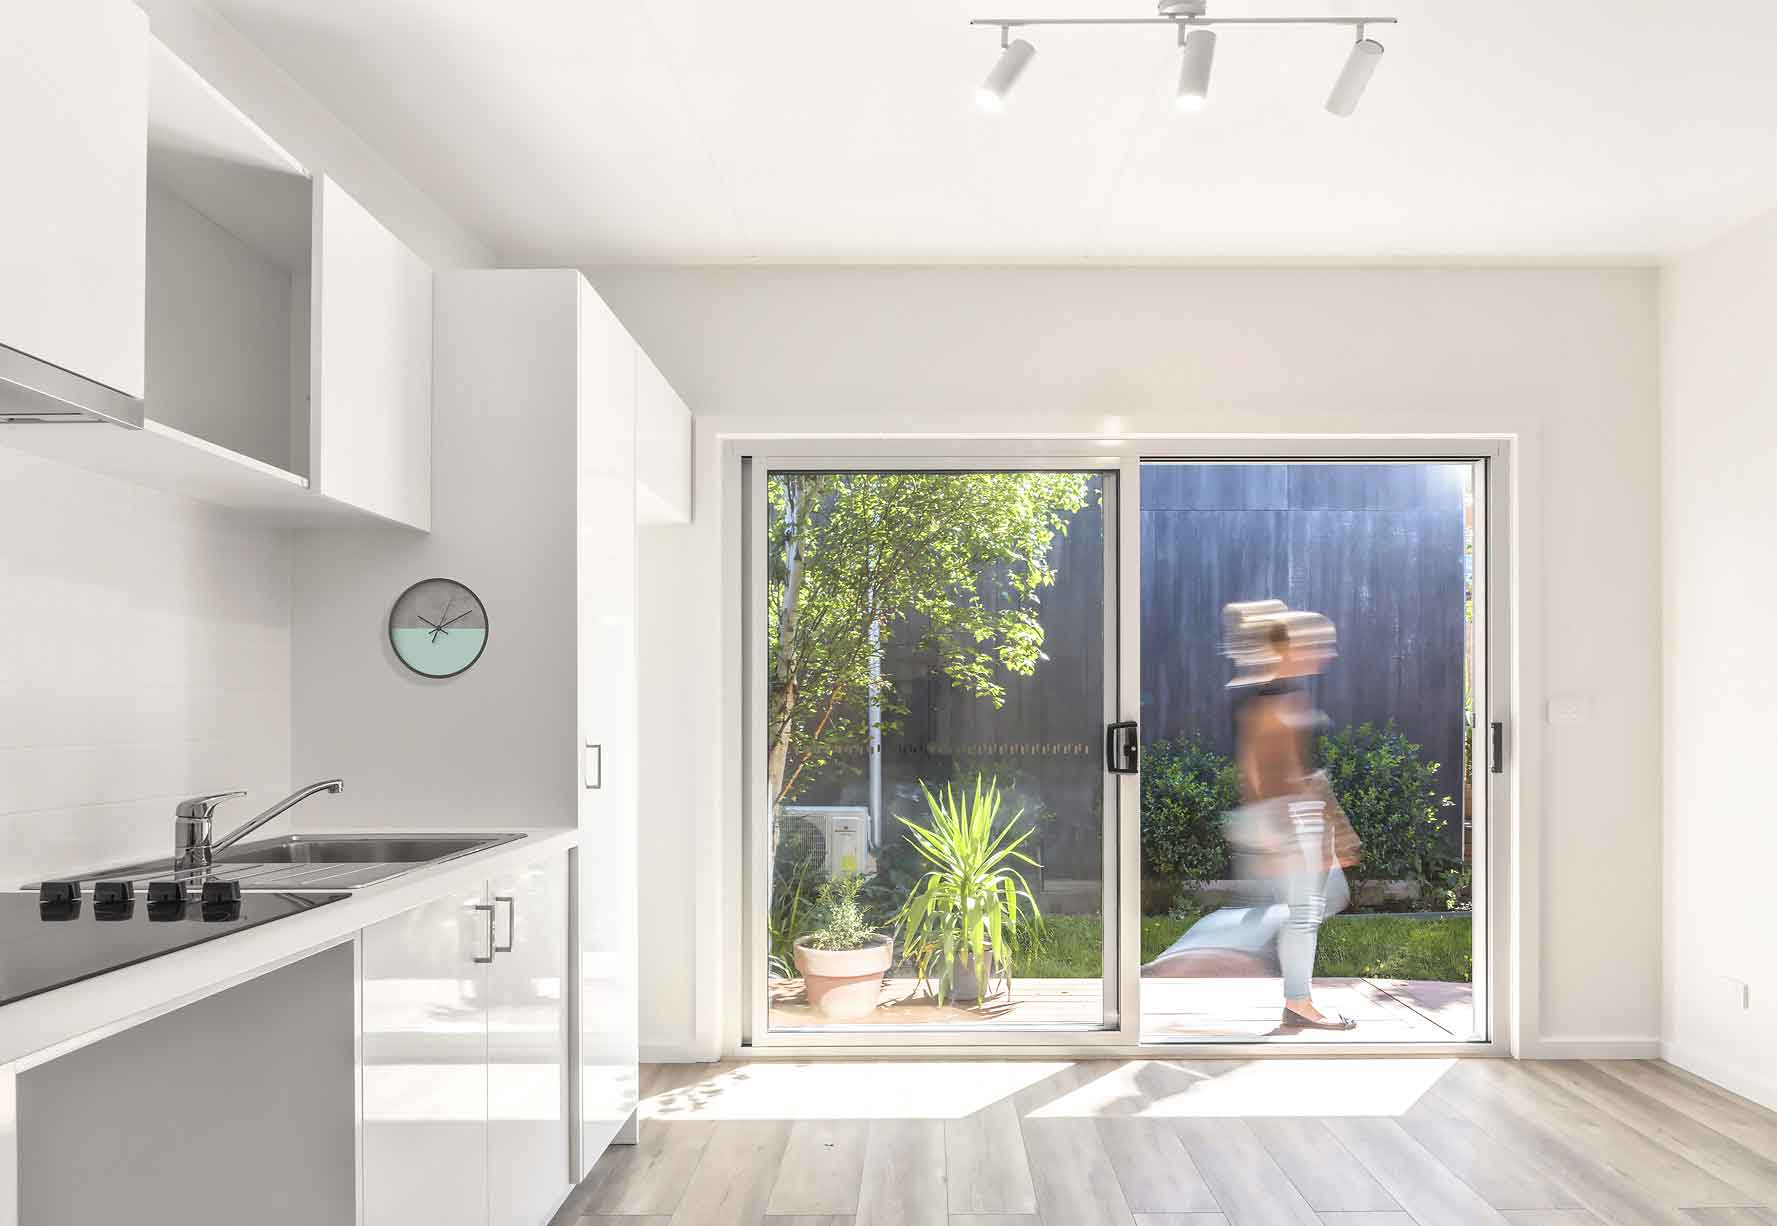 Interior of one of our granny flats Melbourne featuring one of our kitchens.